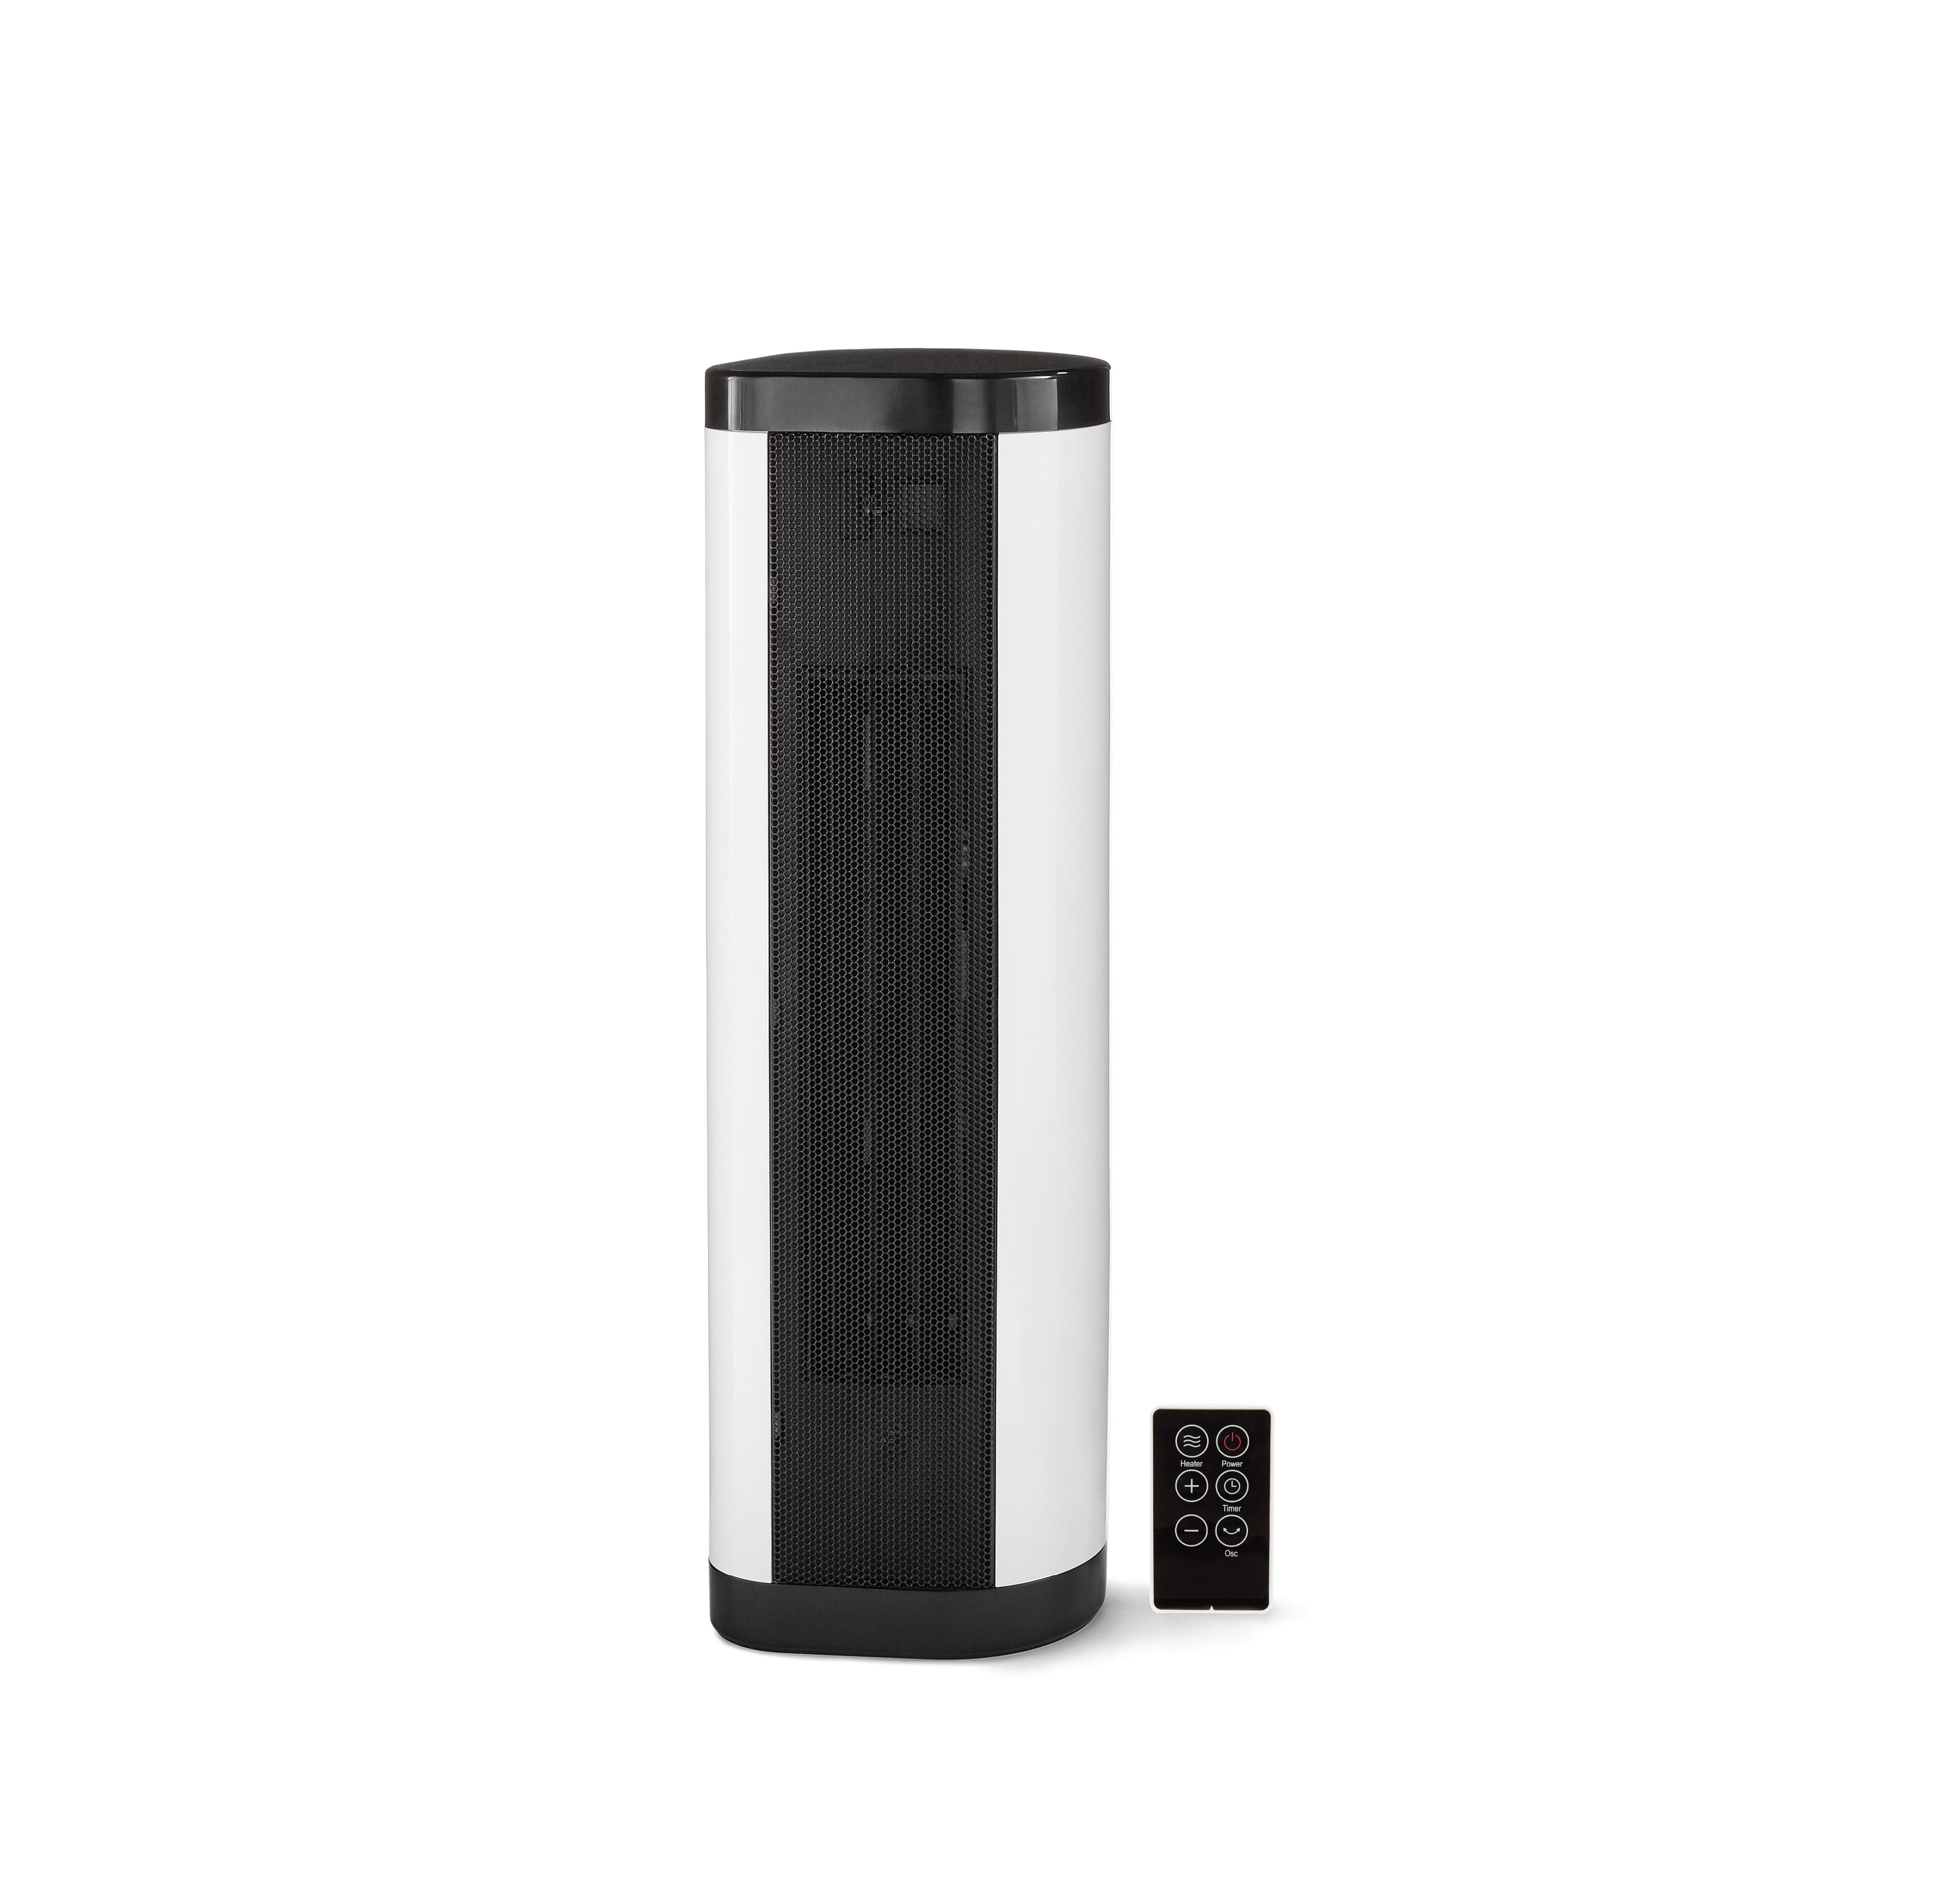 Mainstays Baseboard Tower Heater, Black/White, NTH15-17BR